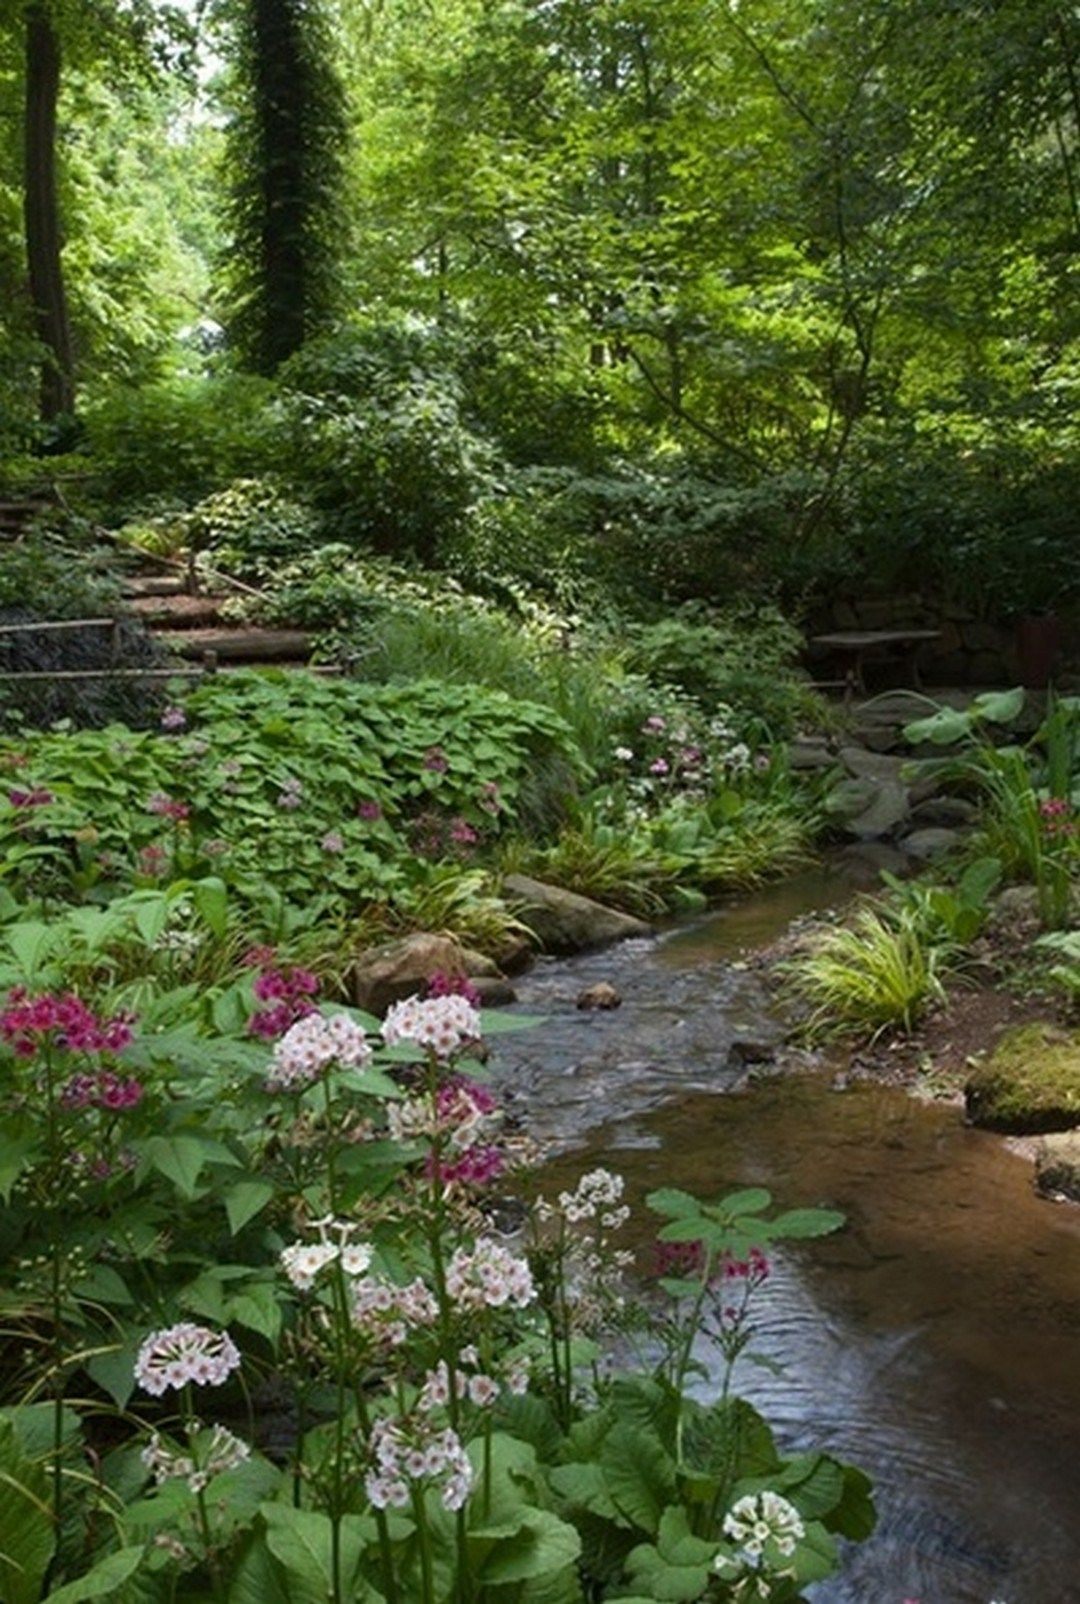 Waldgarten Ps 5 Ideas For The Visual Protection In The Garden From Metal Metal Is Su In 2020 Water Features In The Garden Beautiful Gardens Garden In The Woods